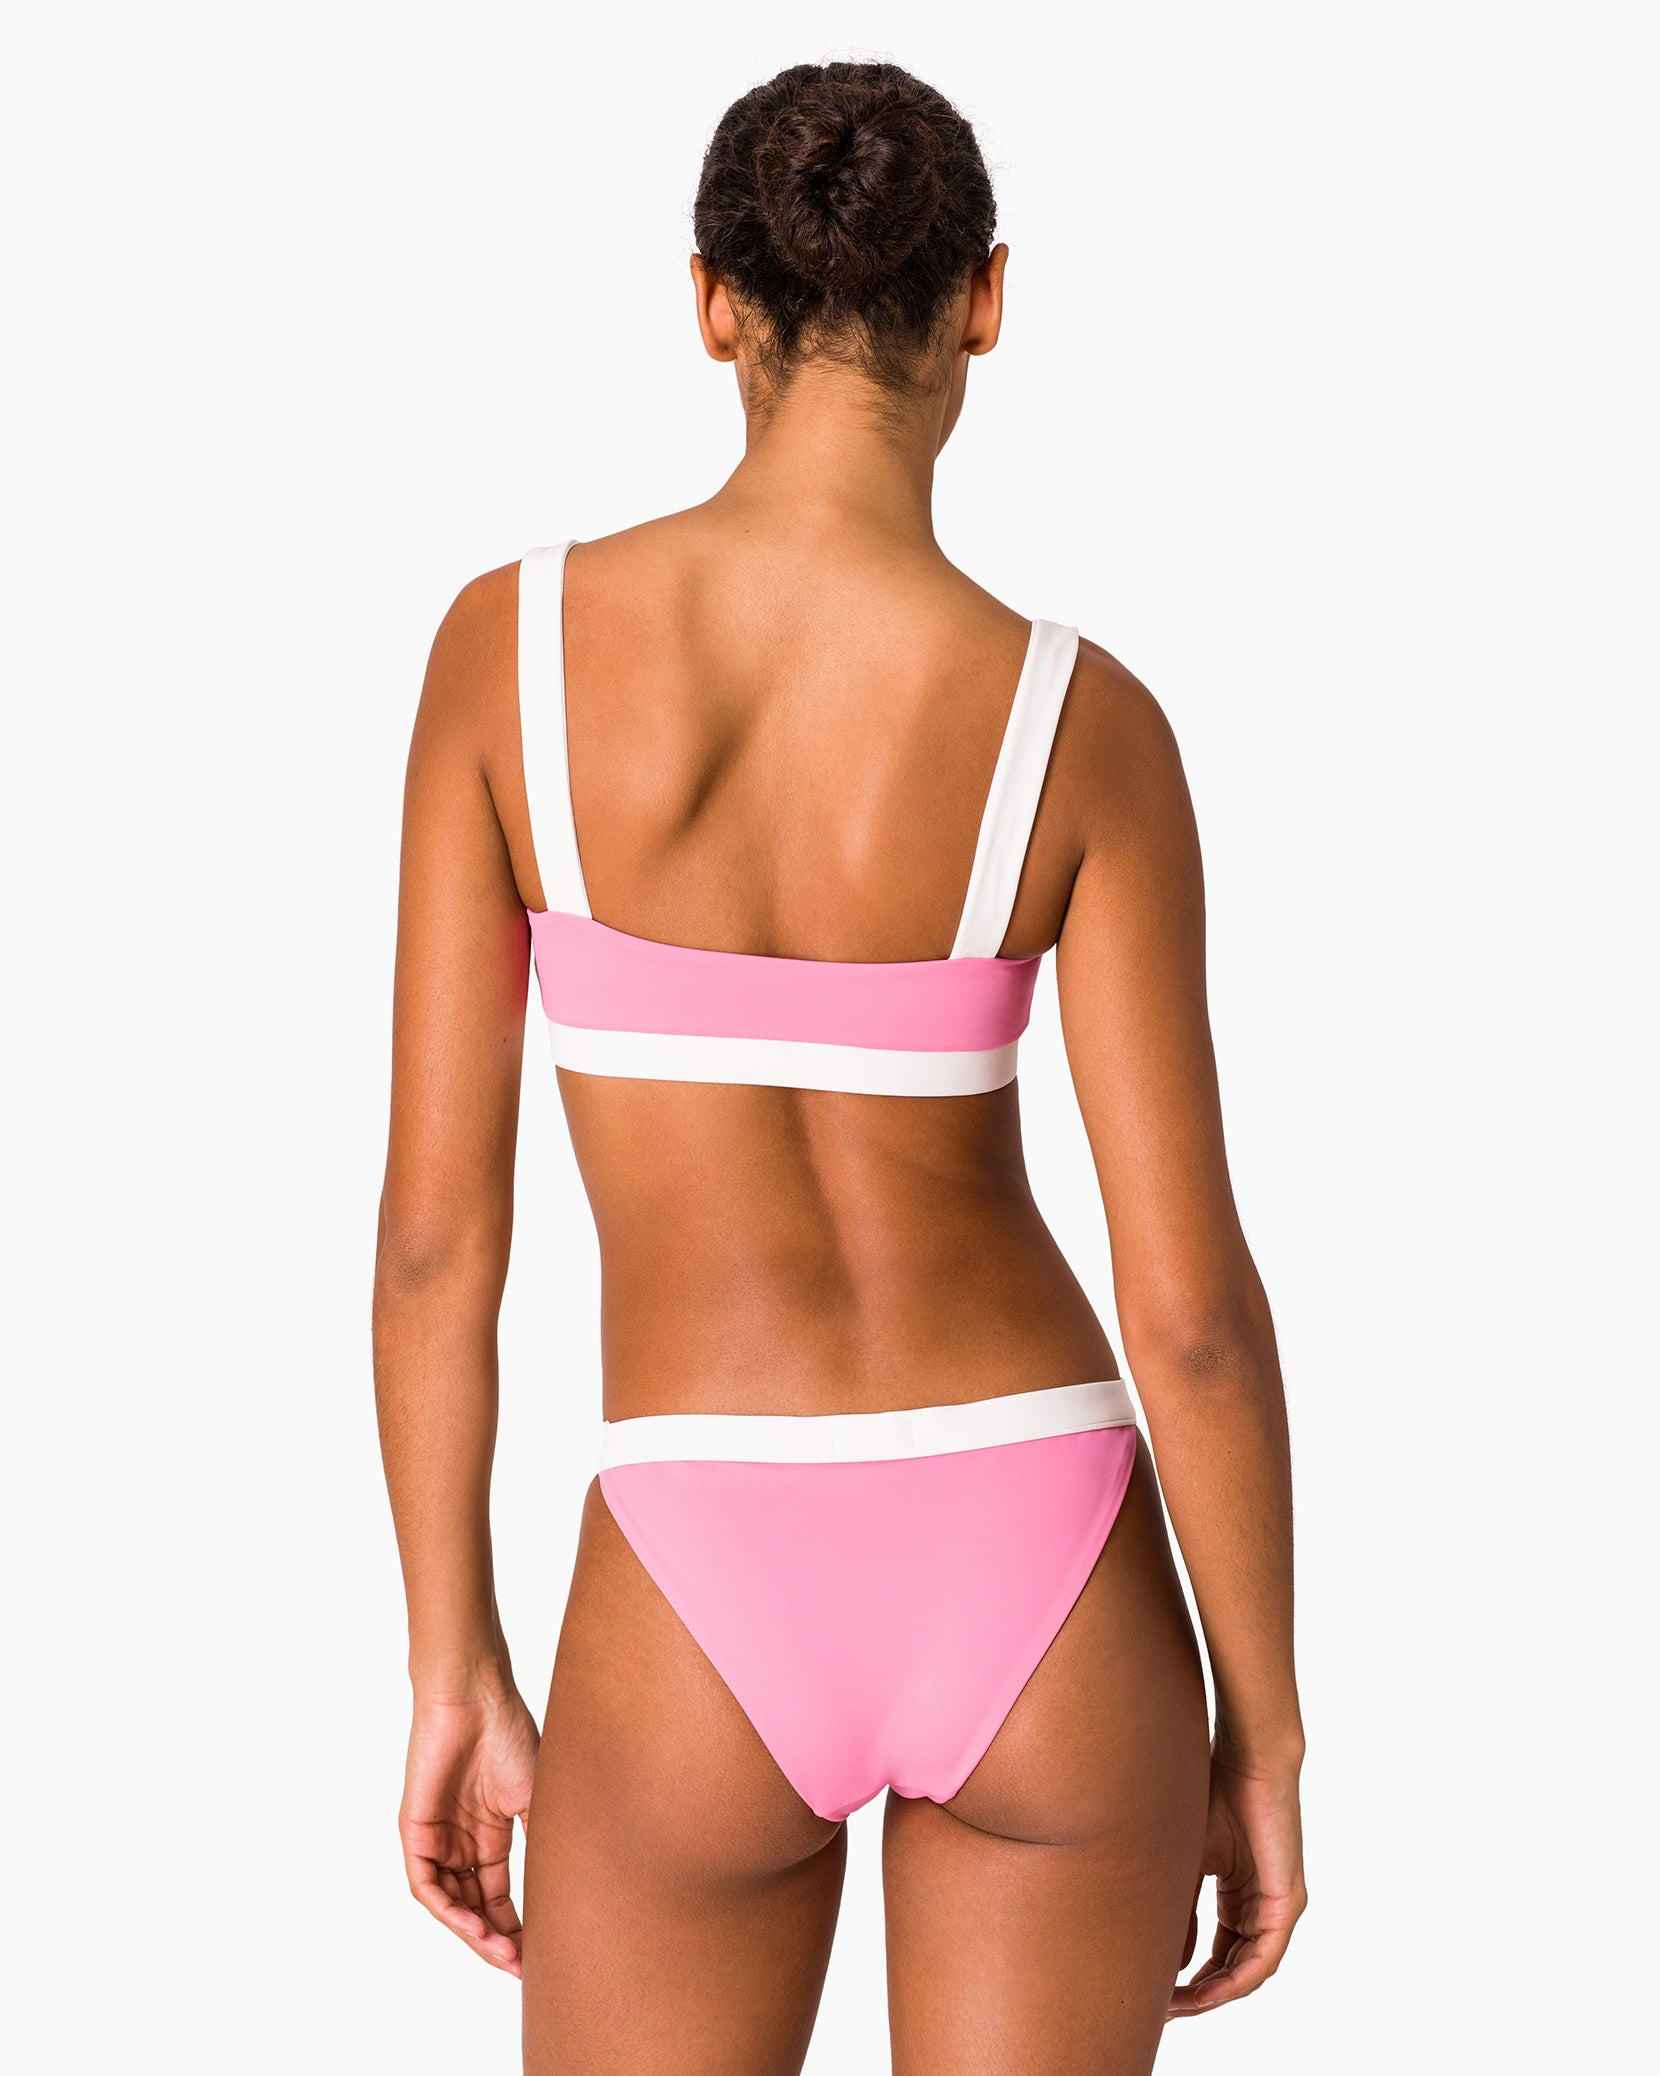 Leila Bikini Bottom in Bubblegum Multi - 2 - Onia